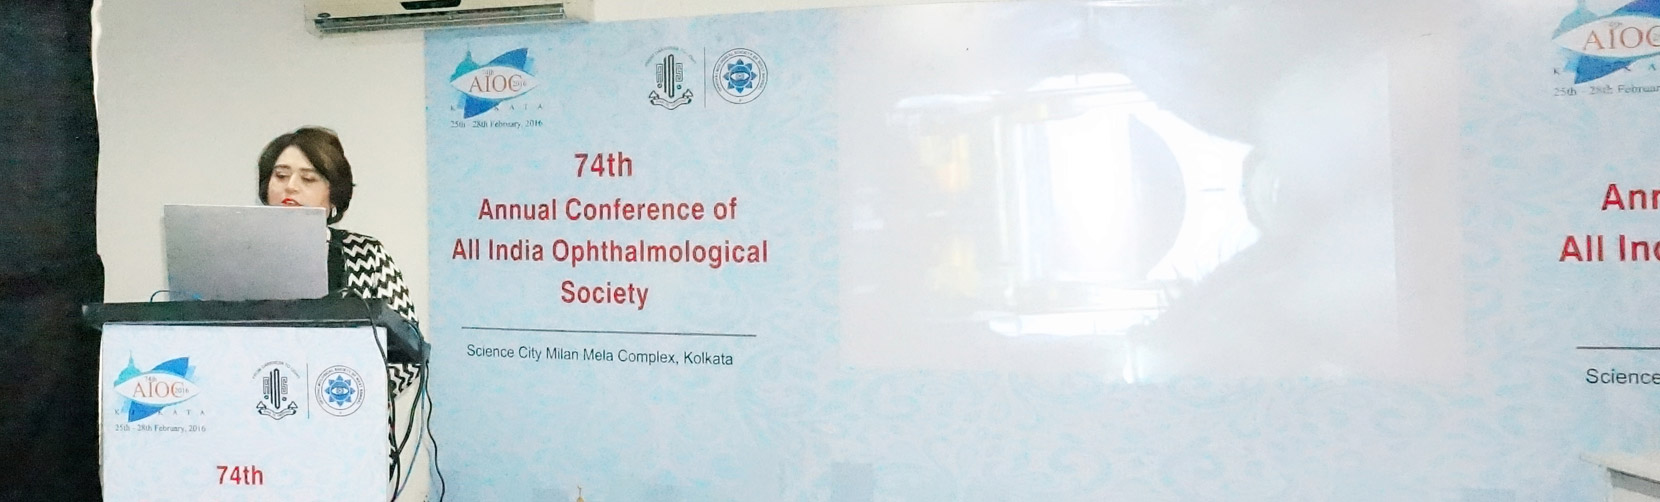 74th Annual Conference of All India Ophthalmological Society